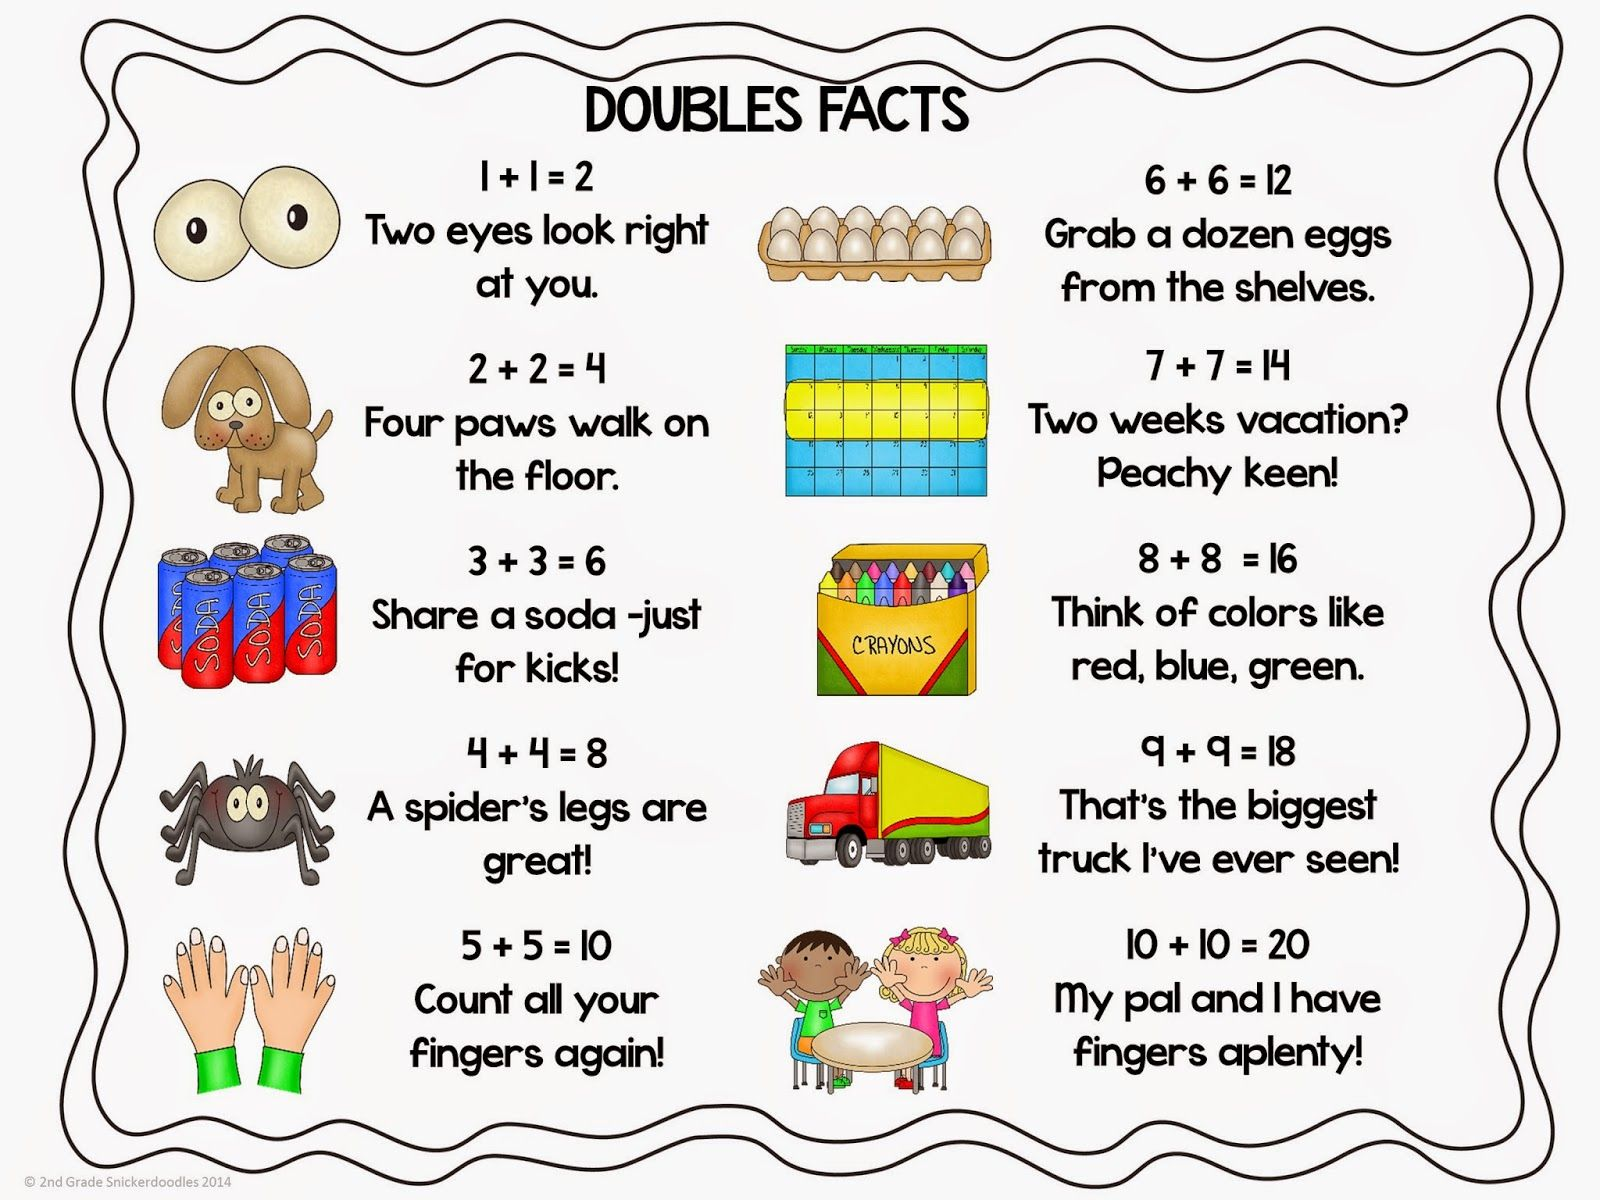 2nd Grade Snickerdoodles: Doubles Facts Freebie | 2nd Grade ...